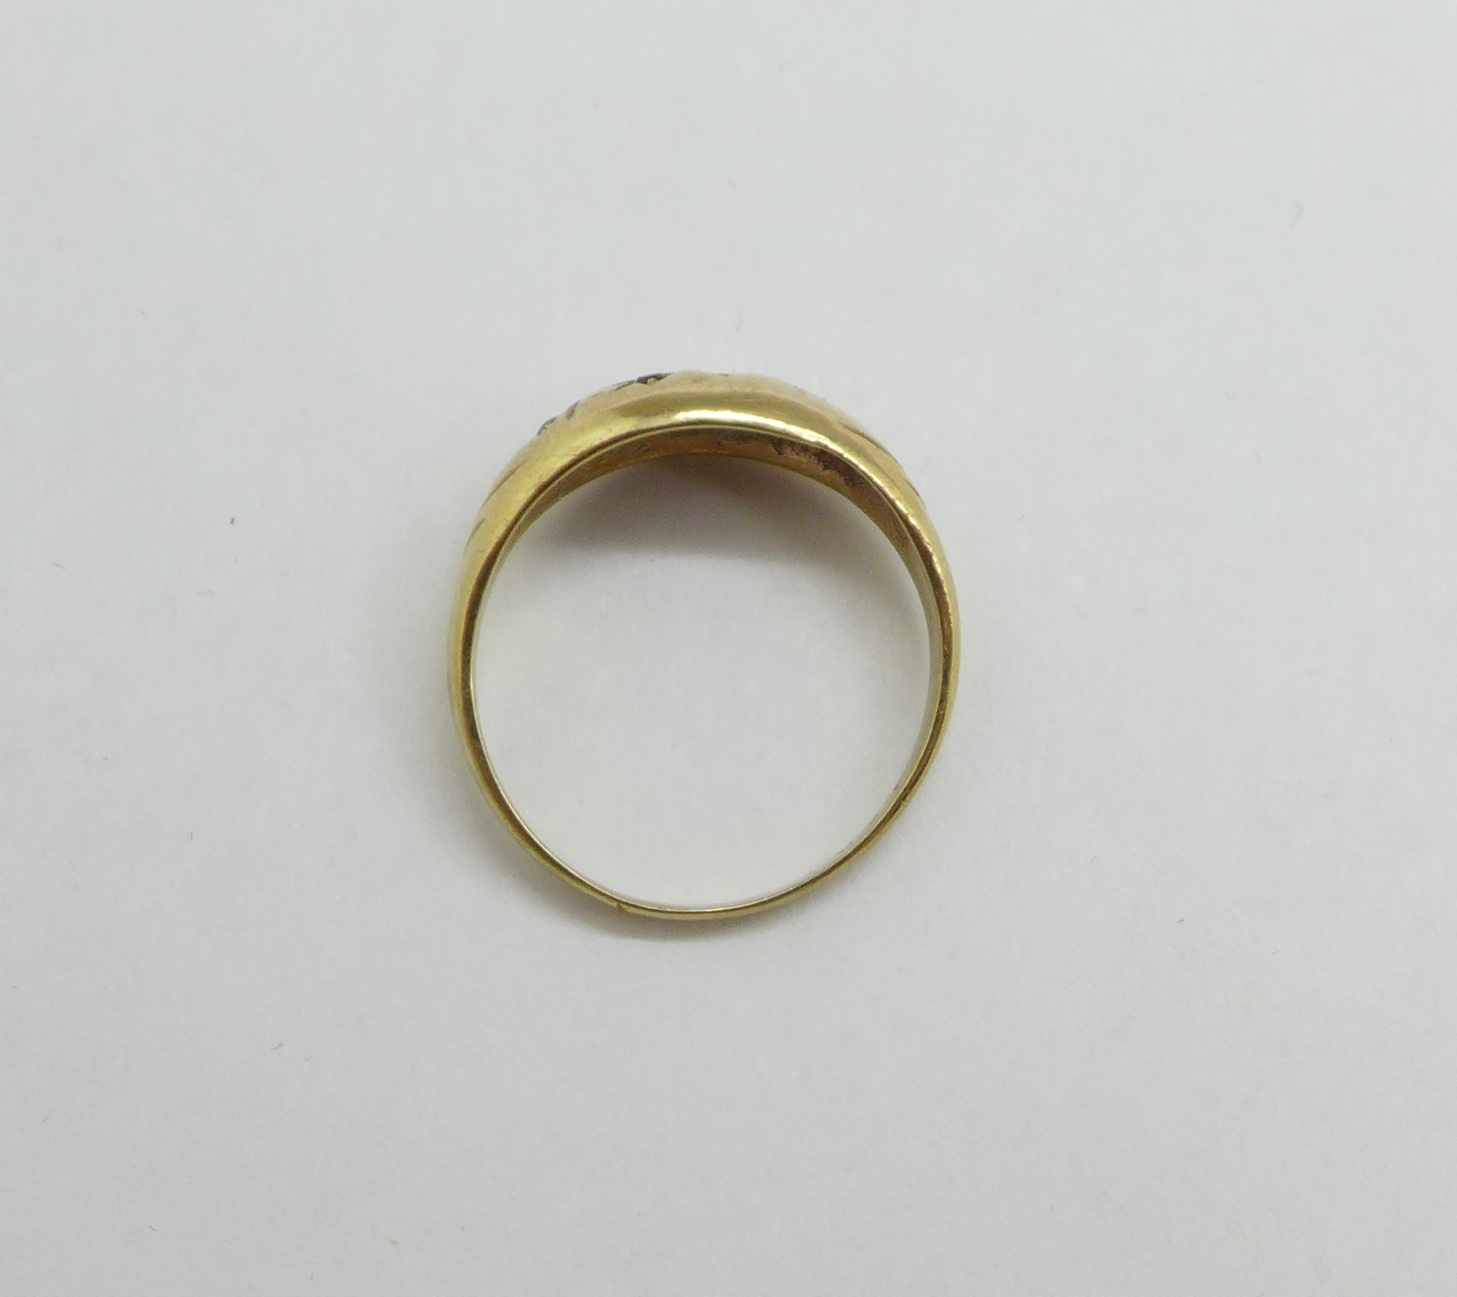 A 9ct gold and garnet ring, one stone missing, 2.8g, P - Image 3 of 3